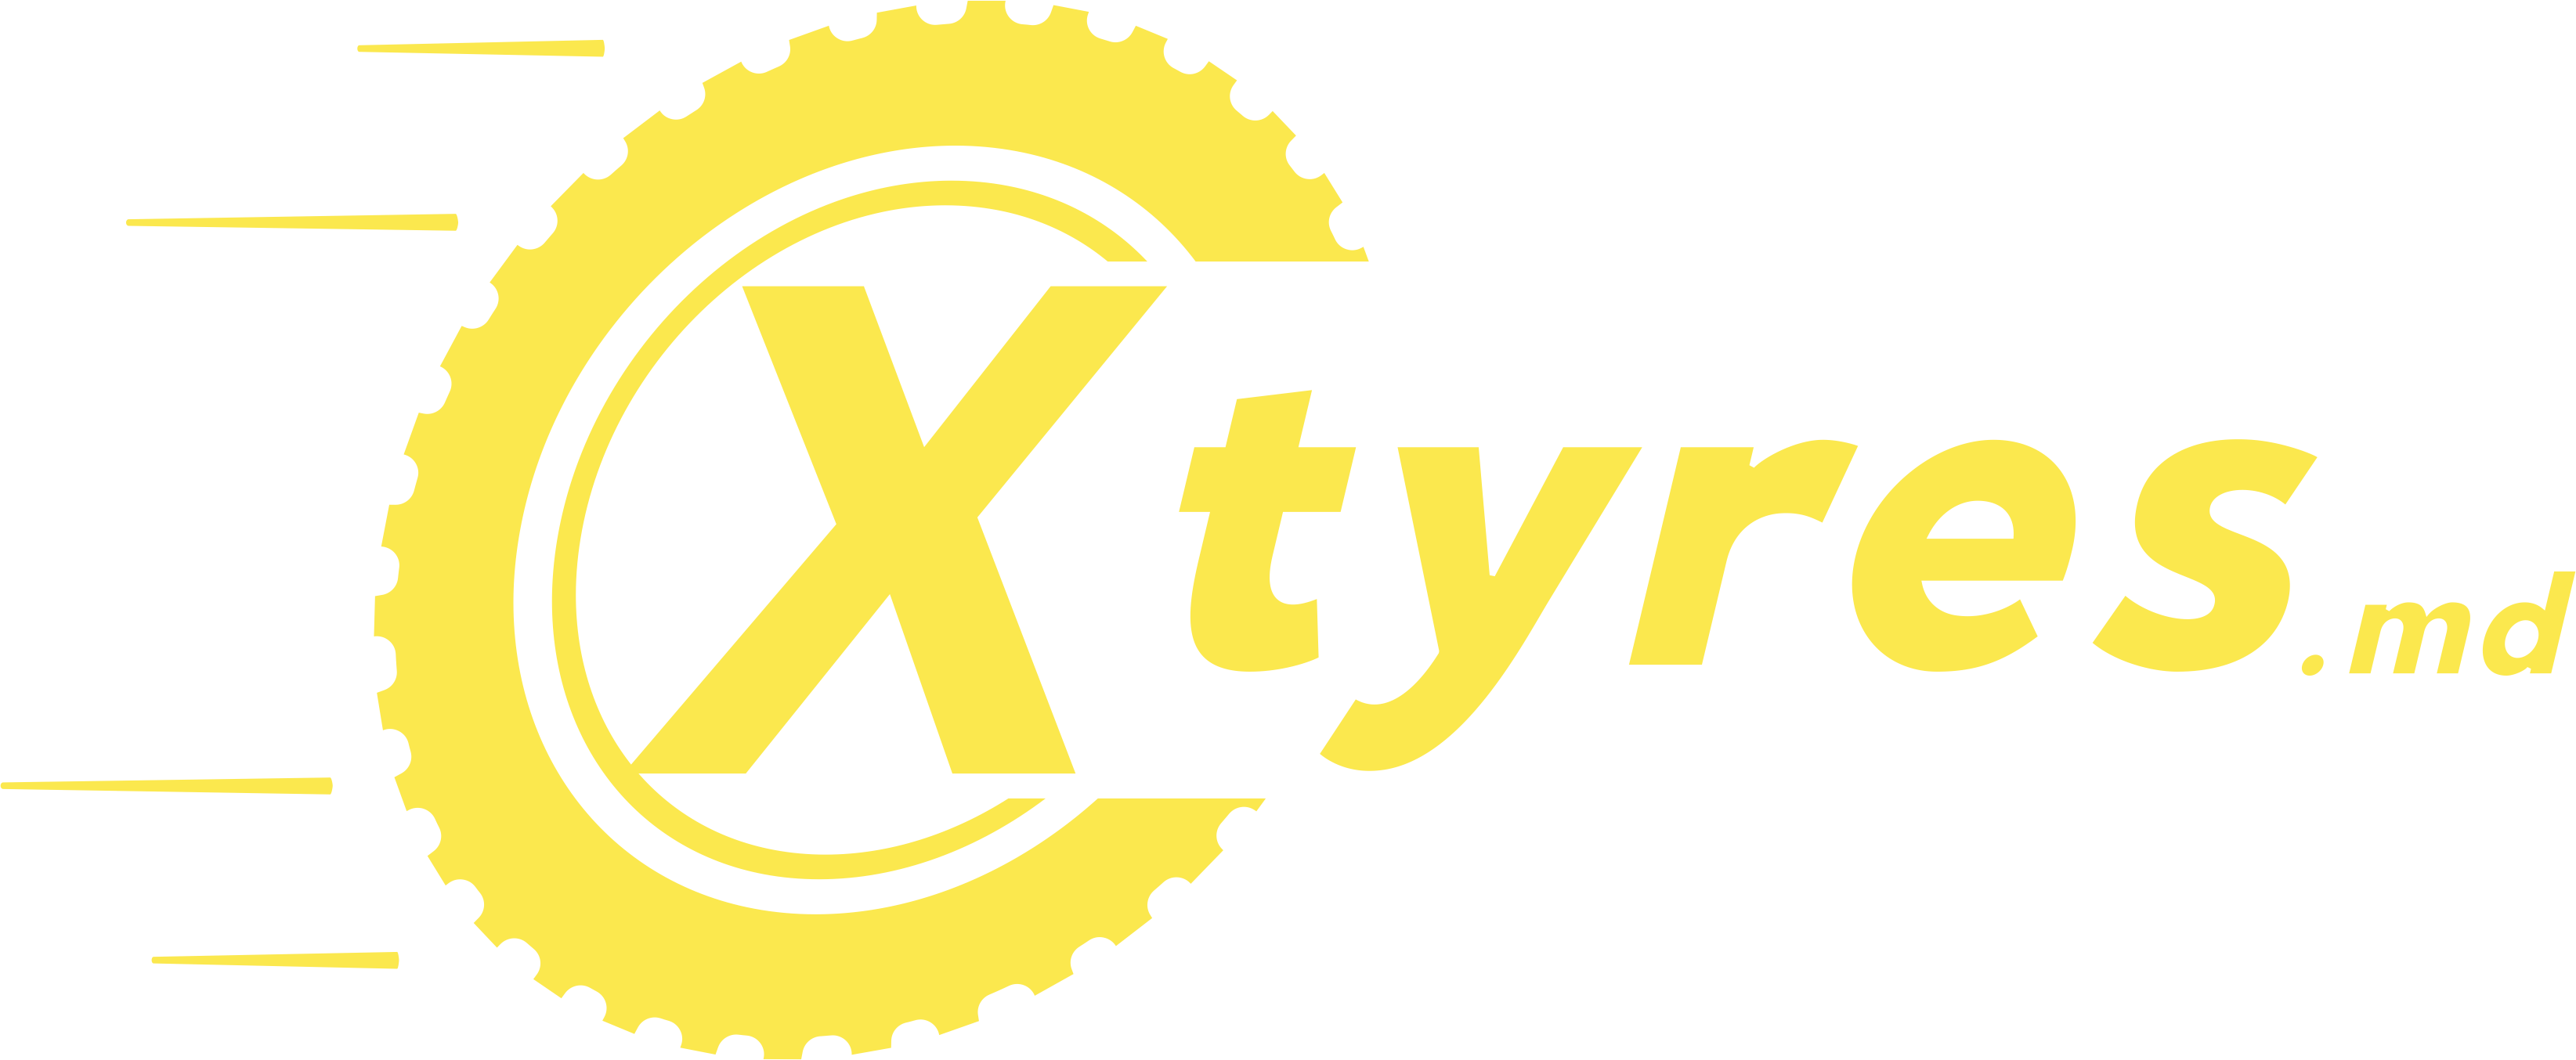 xTyres.md